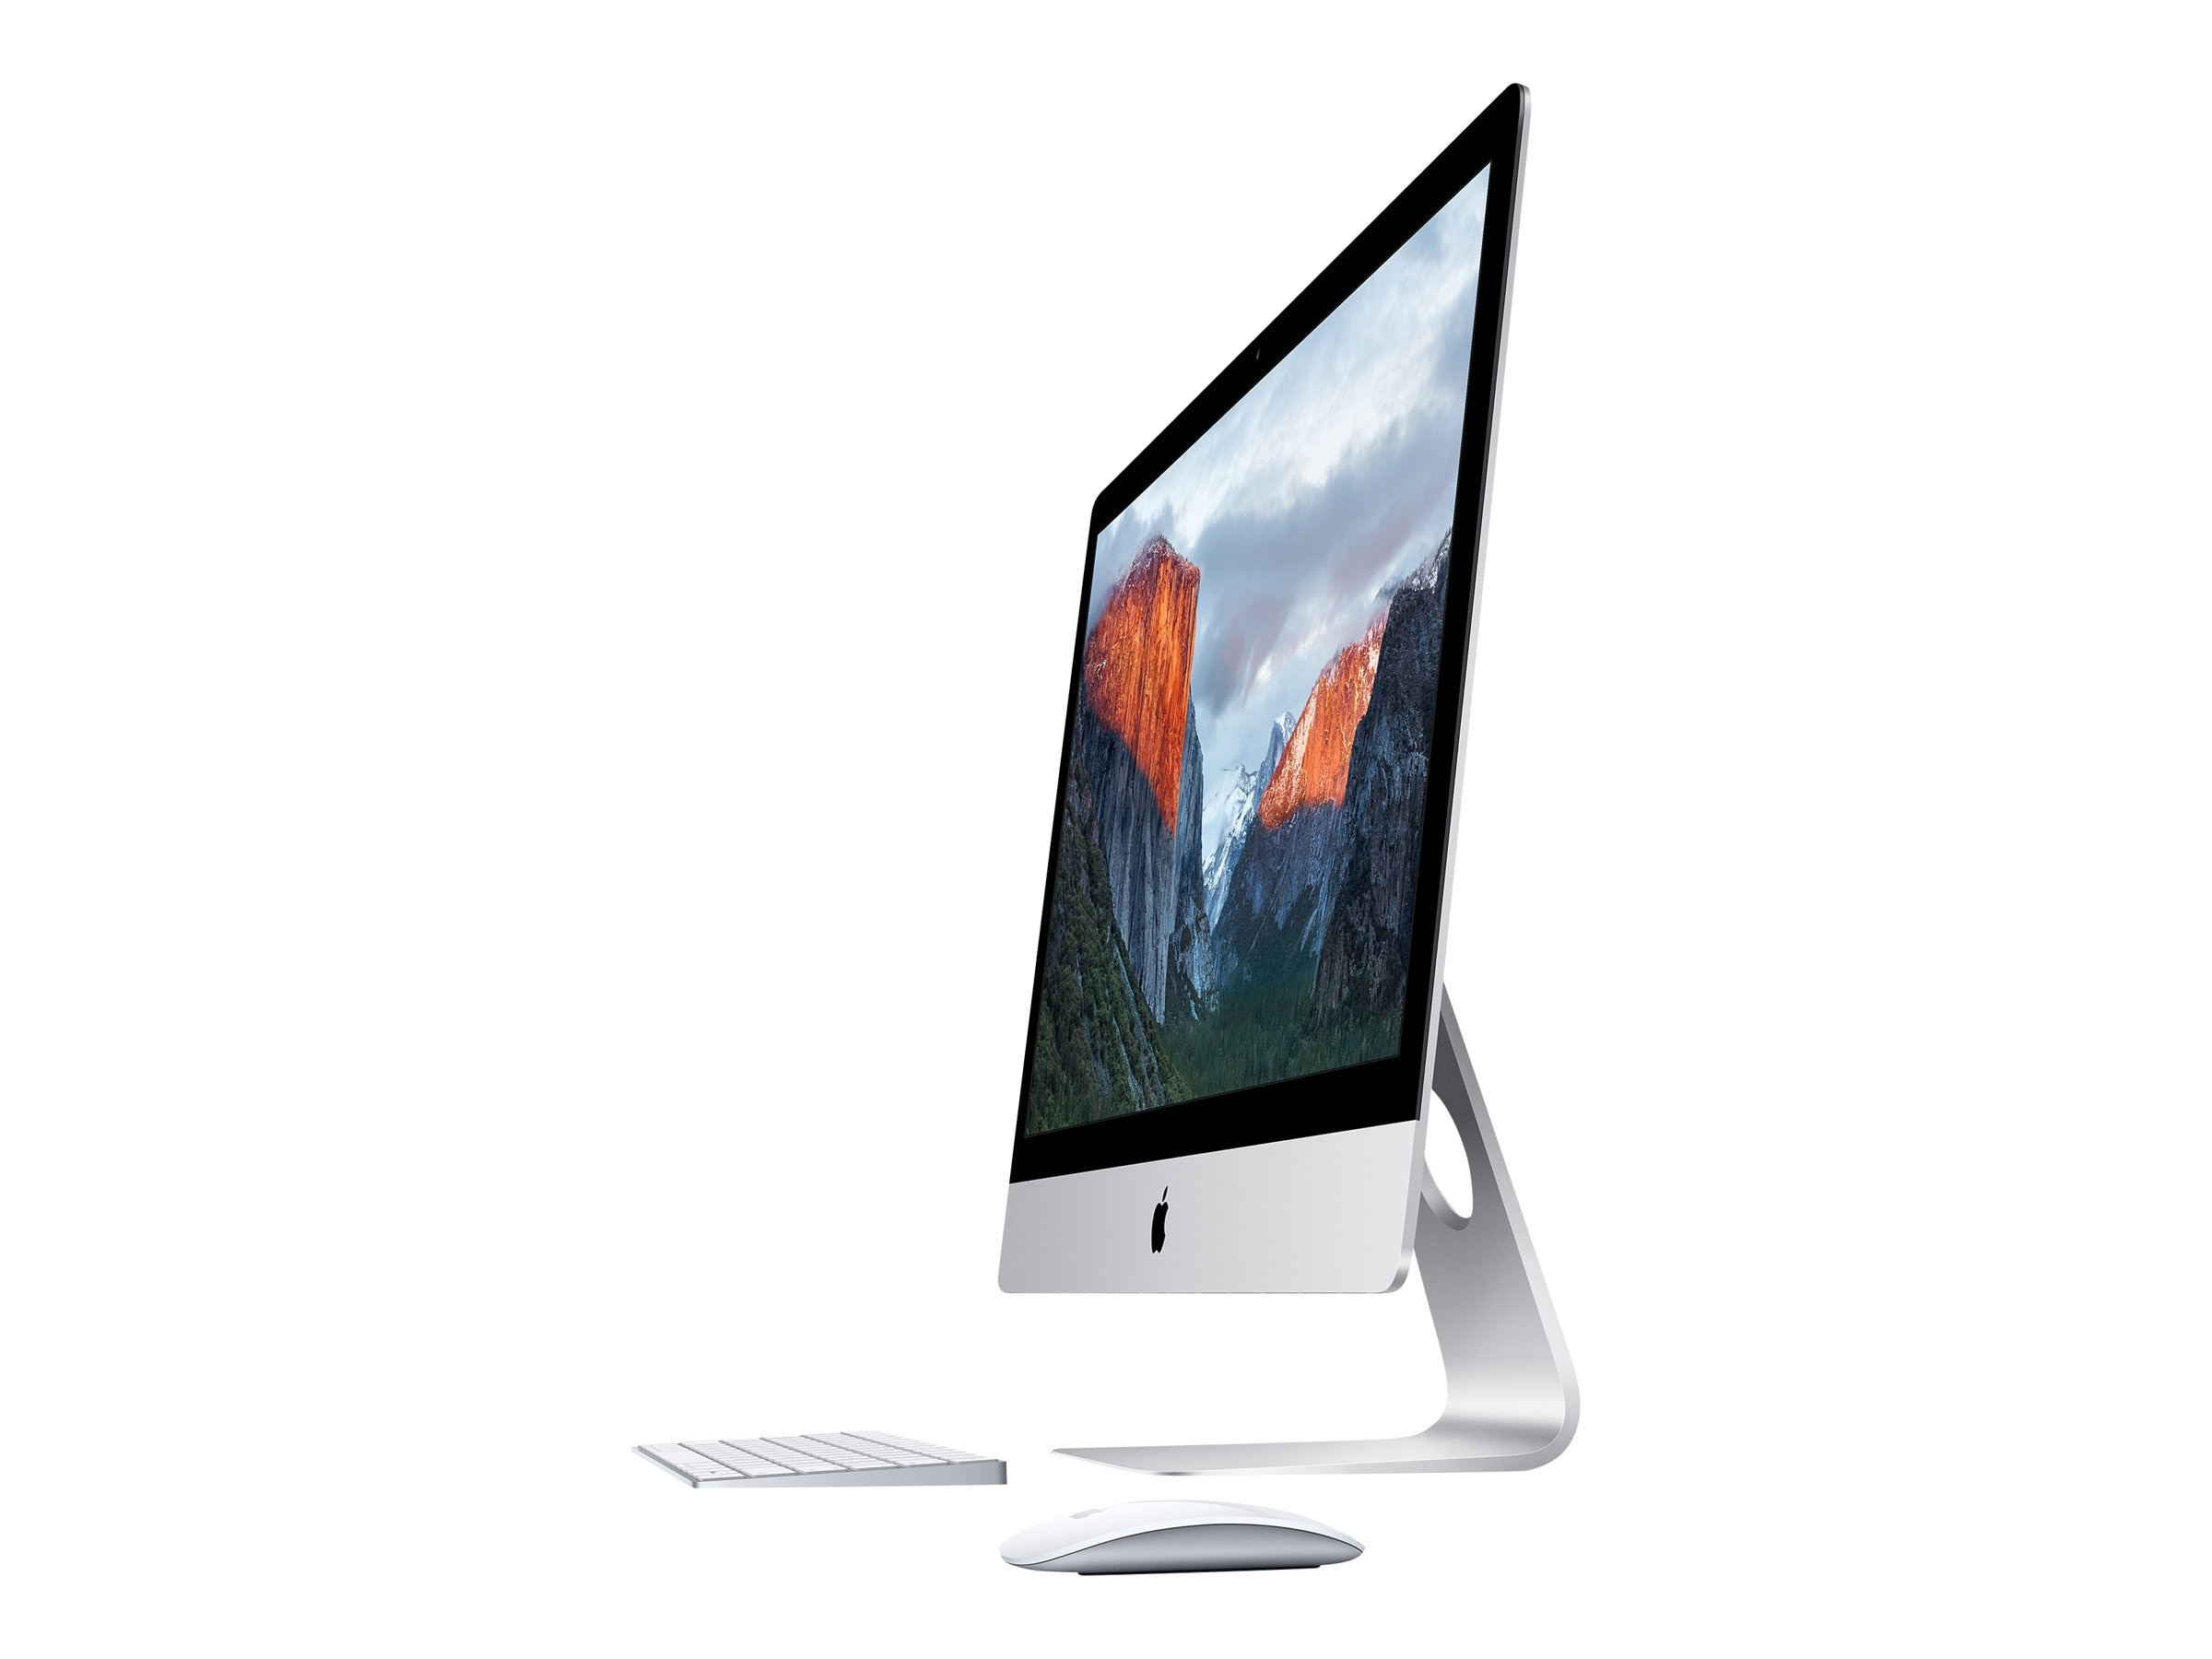 Apple iMac 27 5K QC 3.2GHz Core i5 8GB(2x4GB) 1TB(7200) R9 M380 MagicKeyboard MagicMouse2, MK462LL/A, 30761564, Desktops - iMacs